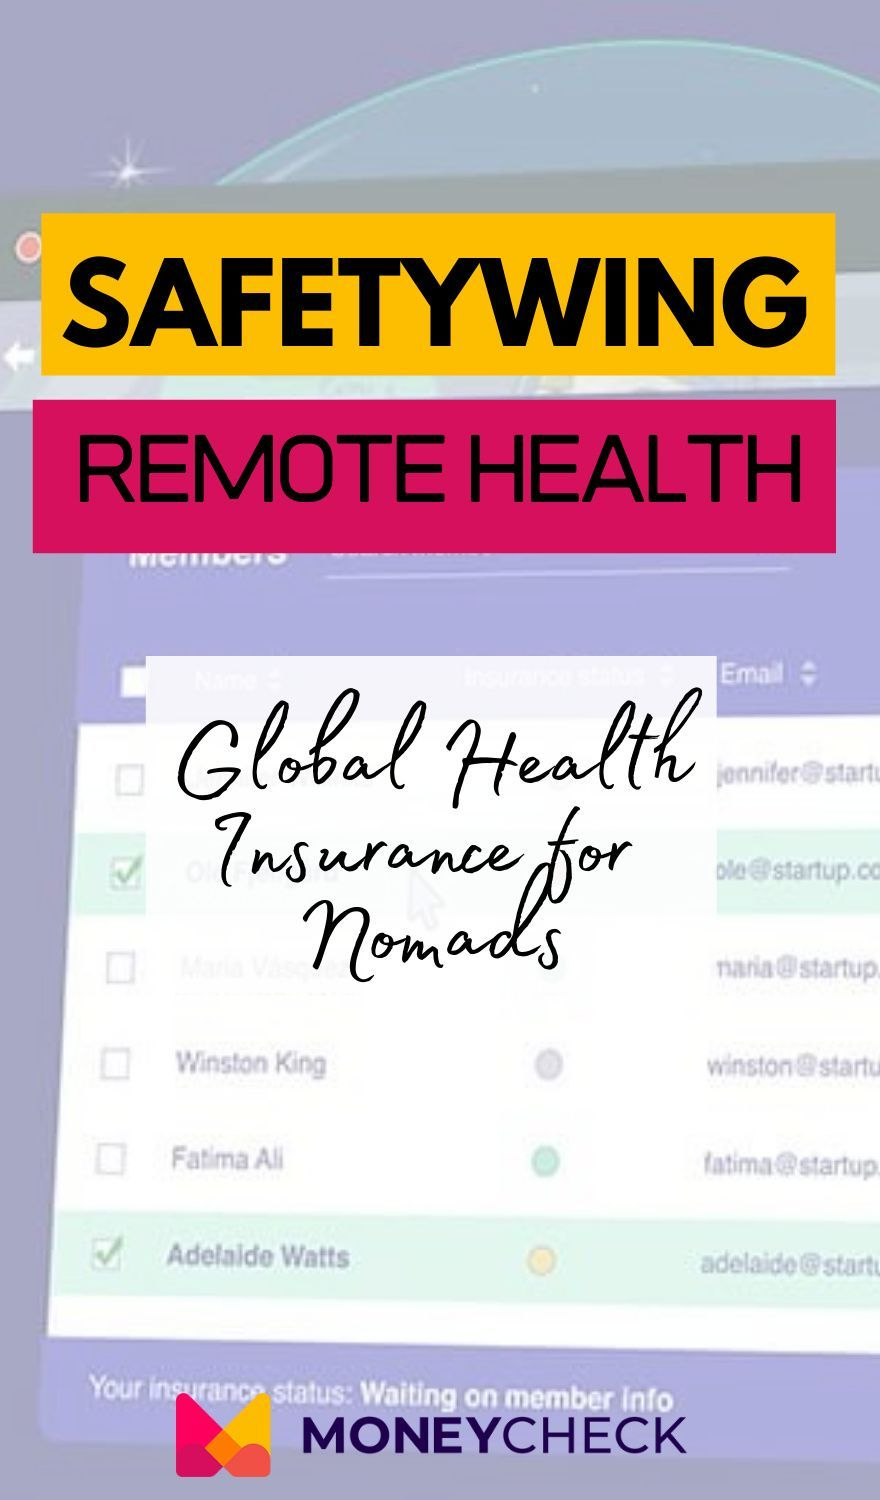 SafetyWing Remote Health Review 2020: Global Health ...